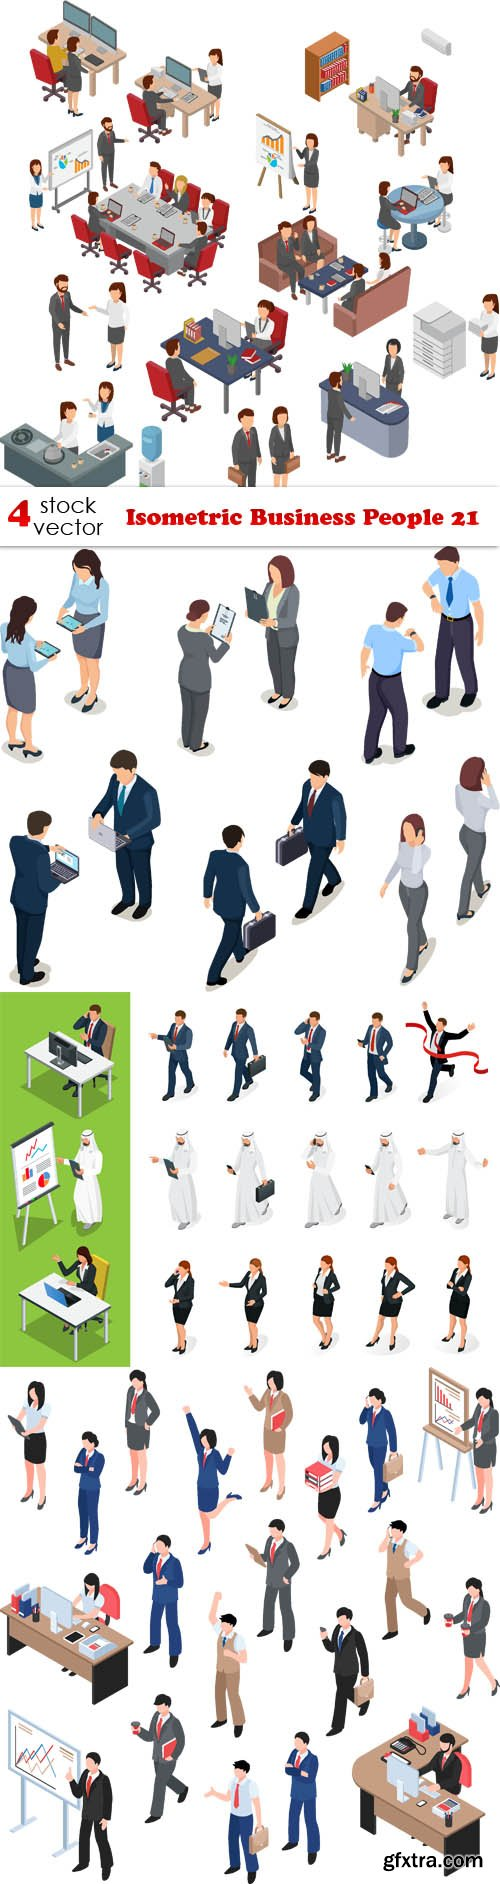 Vectors - Isometric Business People 21